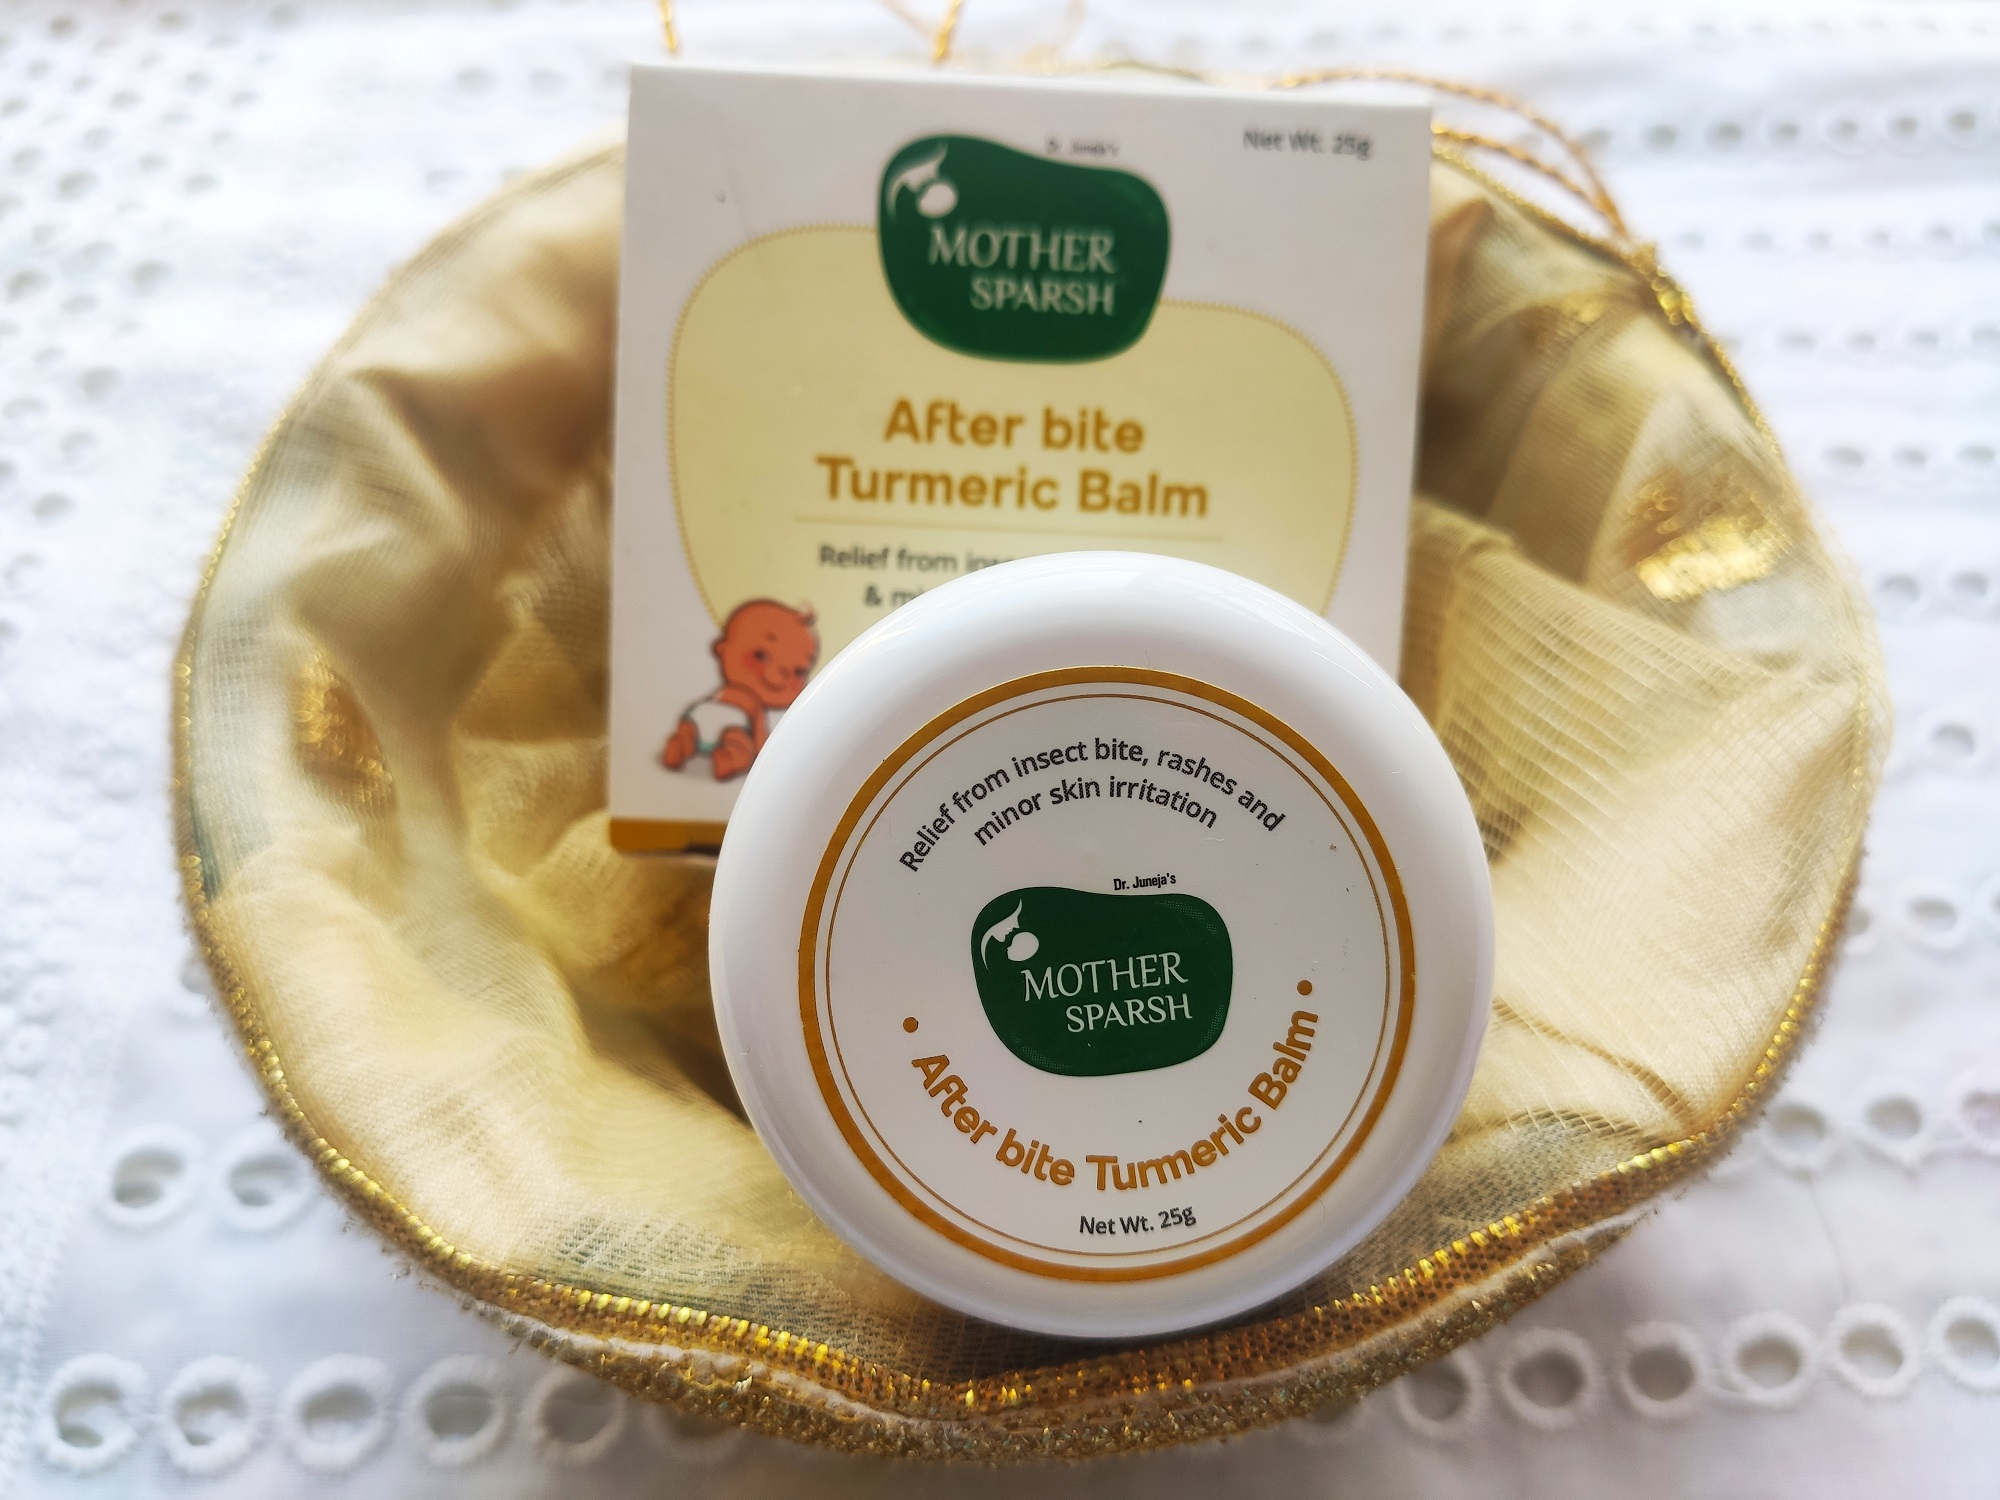 Mother Sparsh After Bite Turmeric Balm